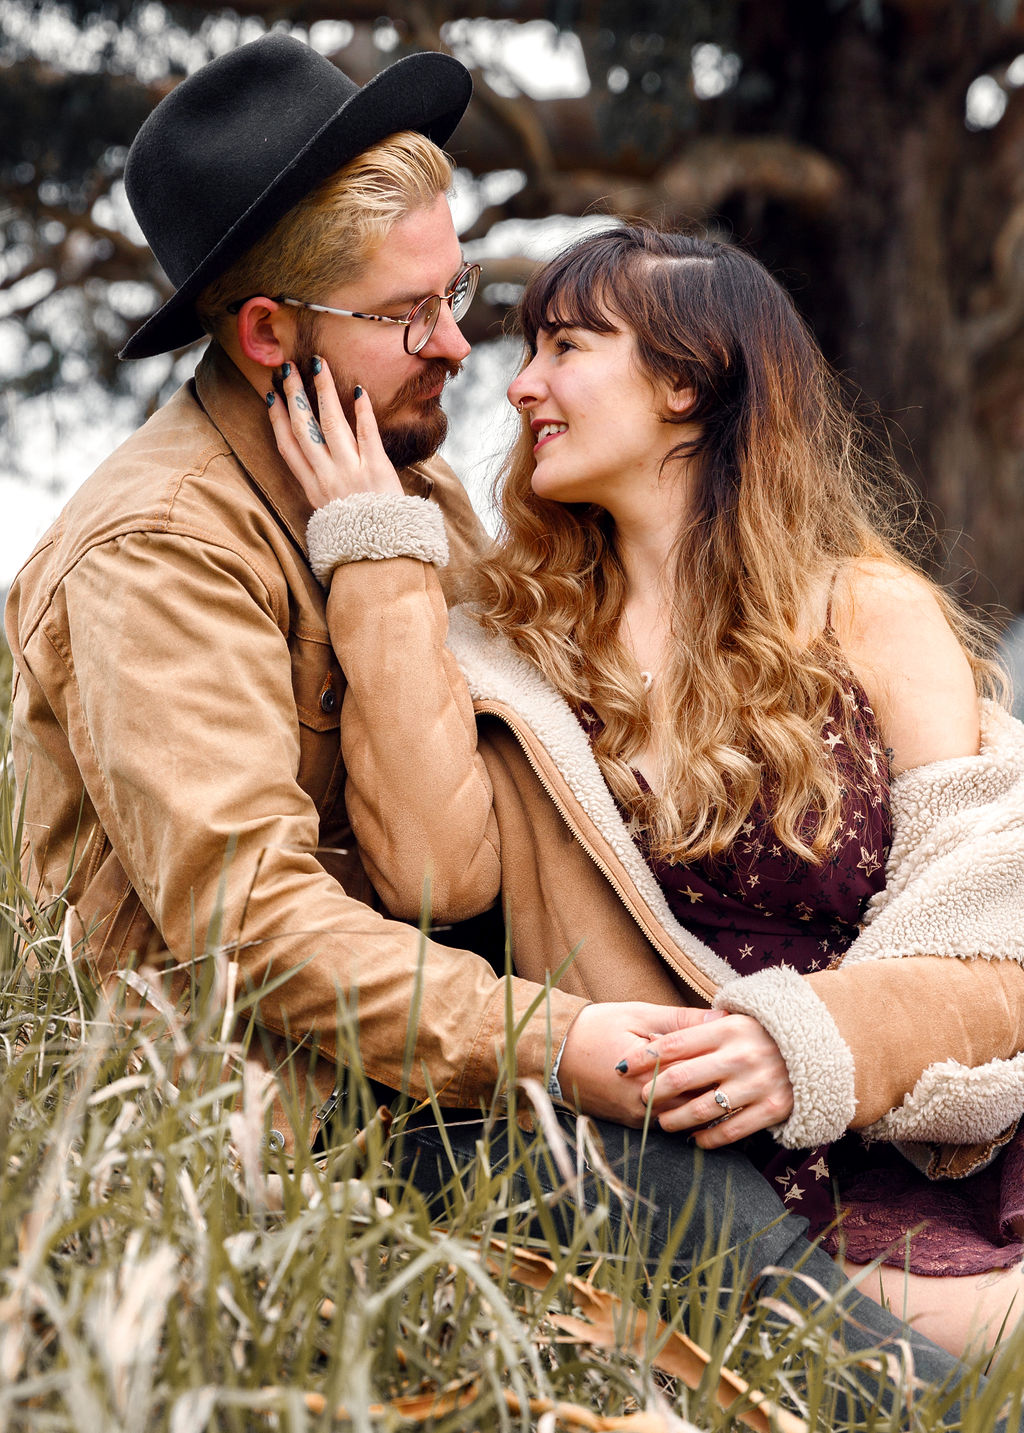 Hipster Couples Photos - Engagement Shoot in Field